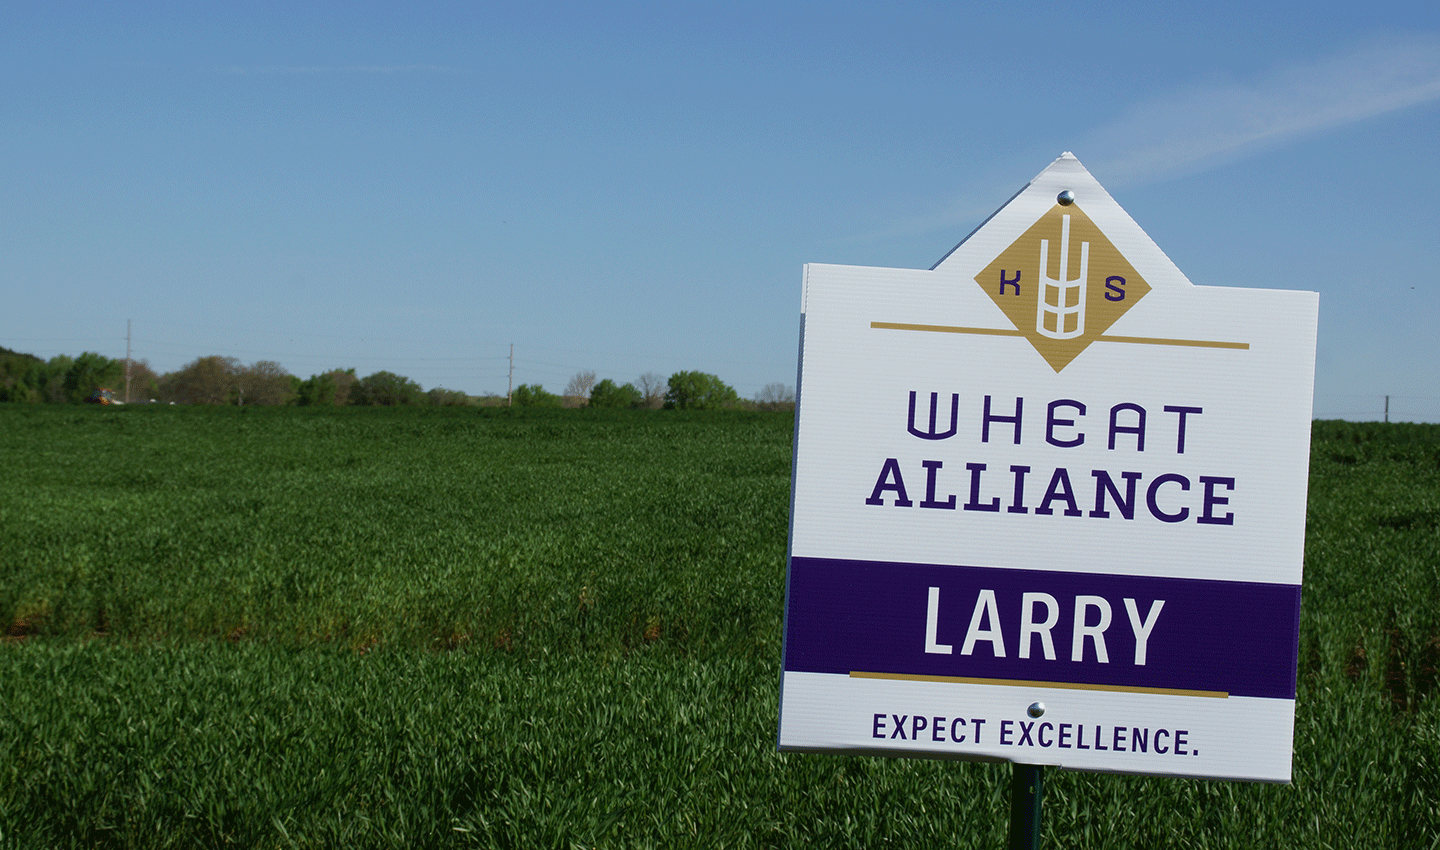 Photo: Field of Larry Wheat.